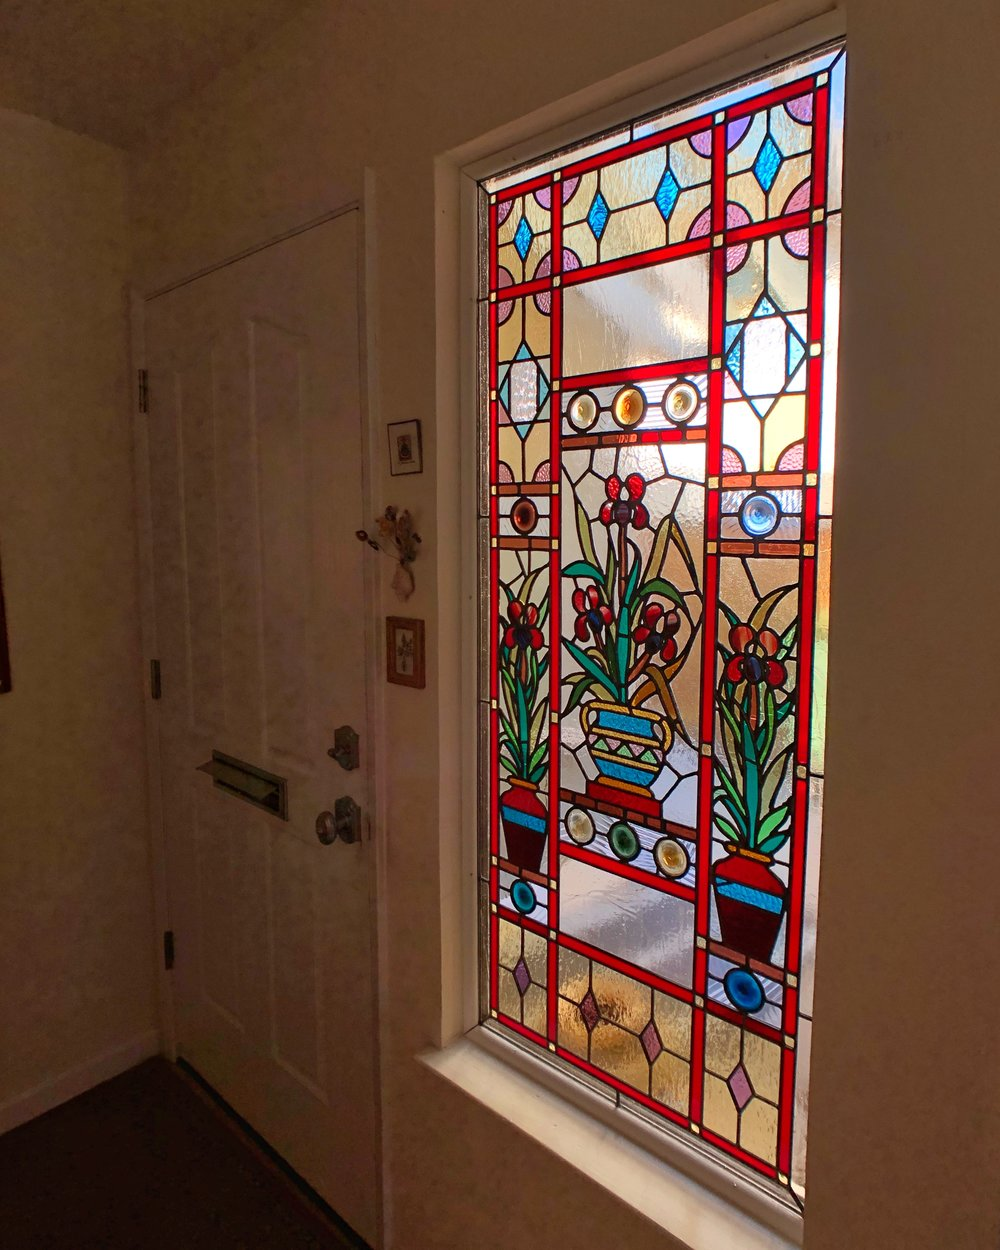 stained glass restoration british charm rondel floral before and after leaded glass legacy glass studios california front entry sidelight colorful custom glass repair.jpg